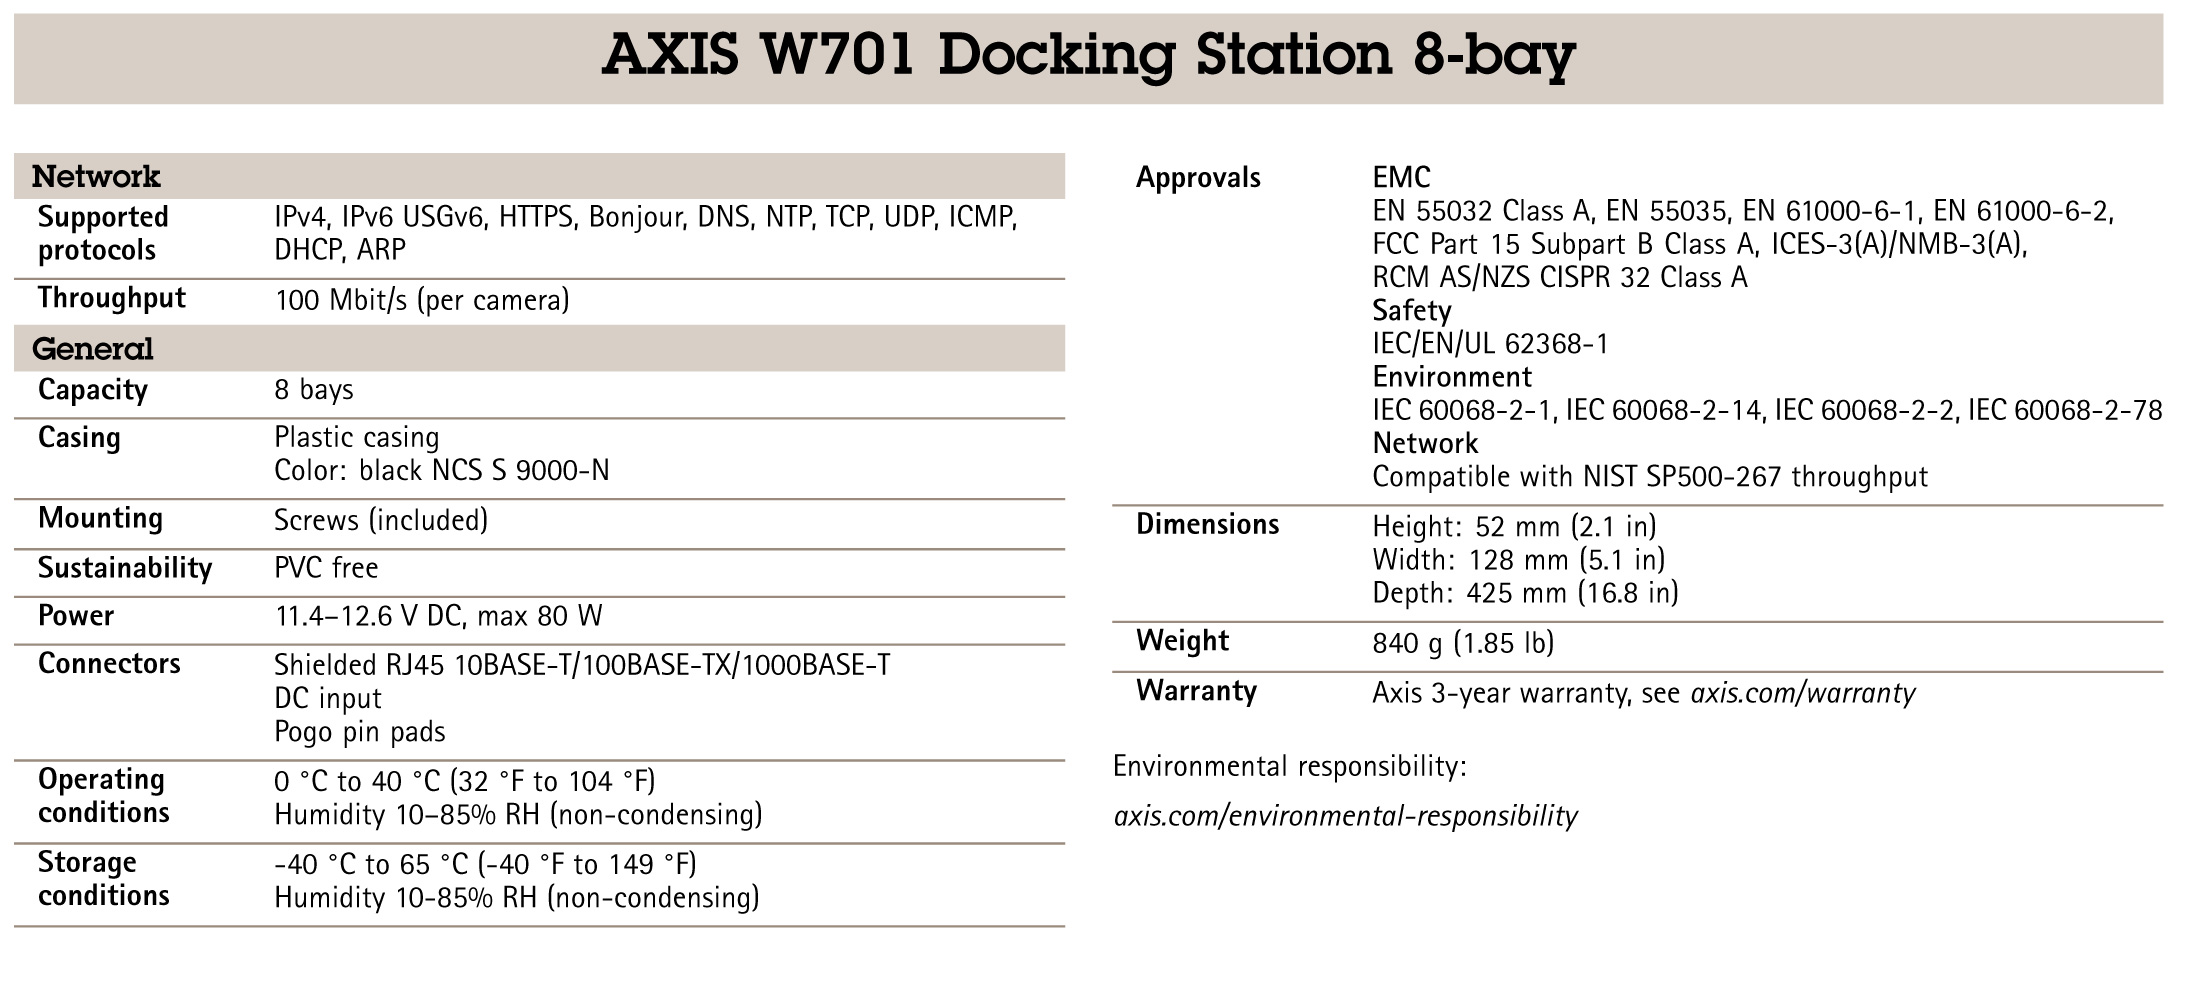 AXIS W701 Docking Station 8-Bay